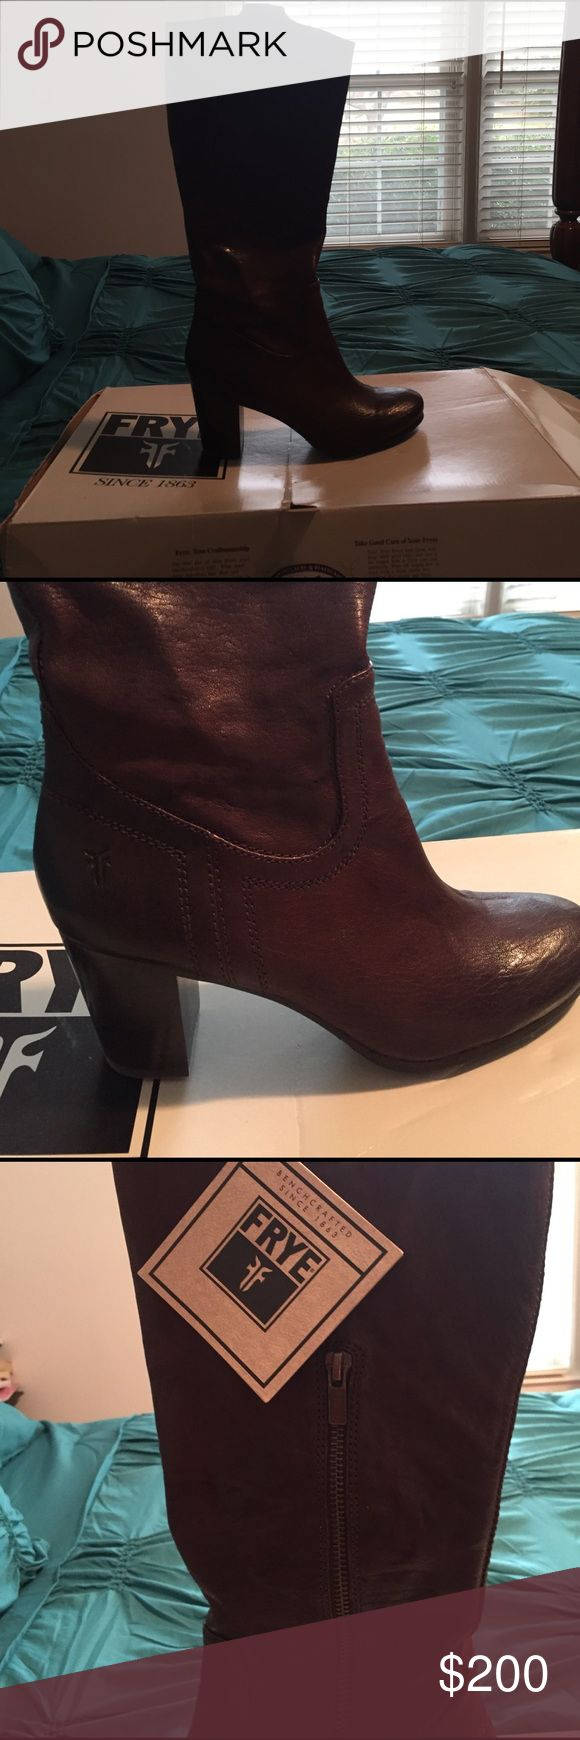 Boots Dark Brown leather Frye Boots brand new never worn.  Size 8 Frye Shoes Heeled Boots